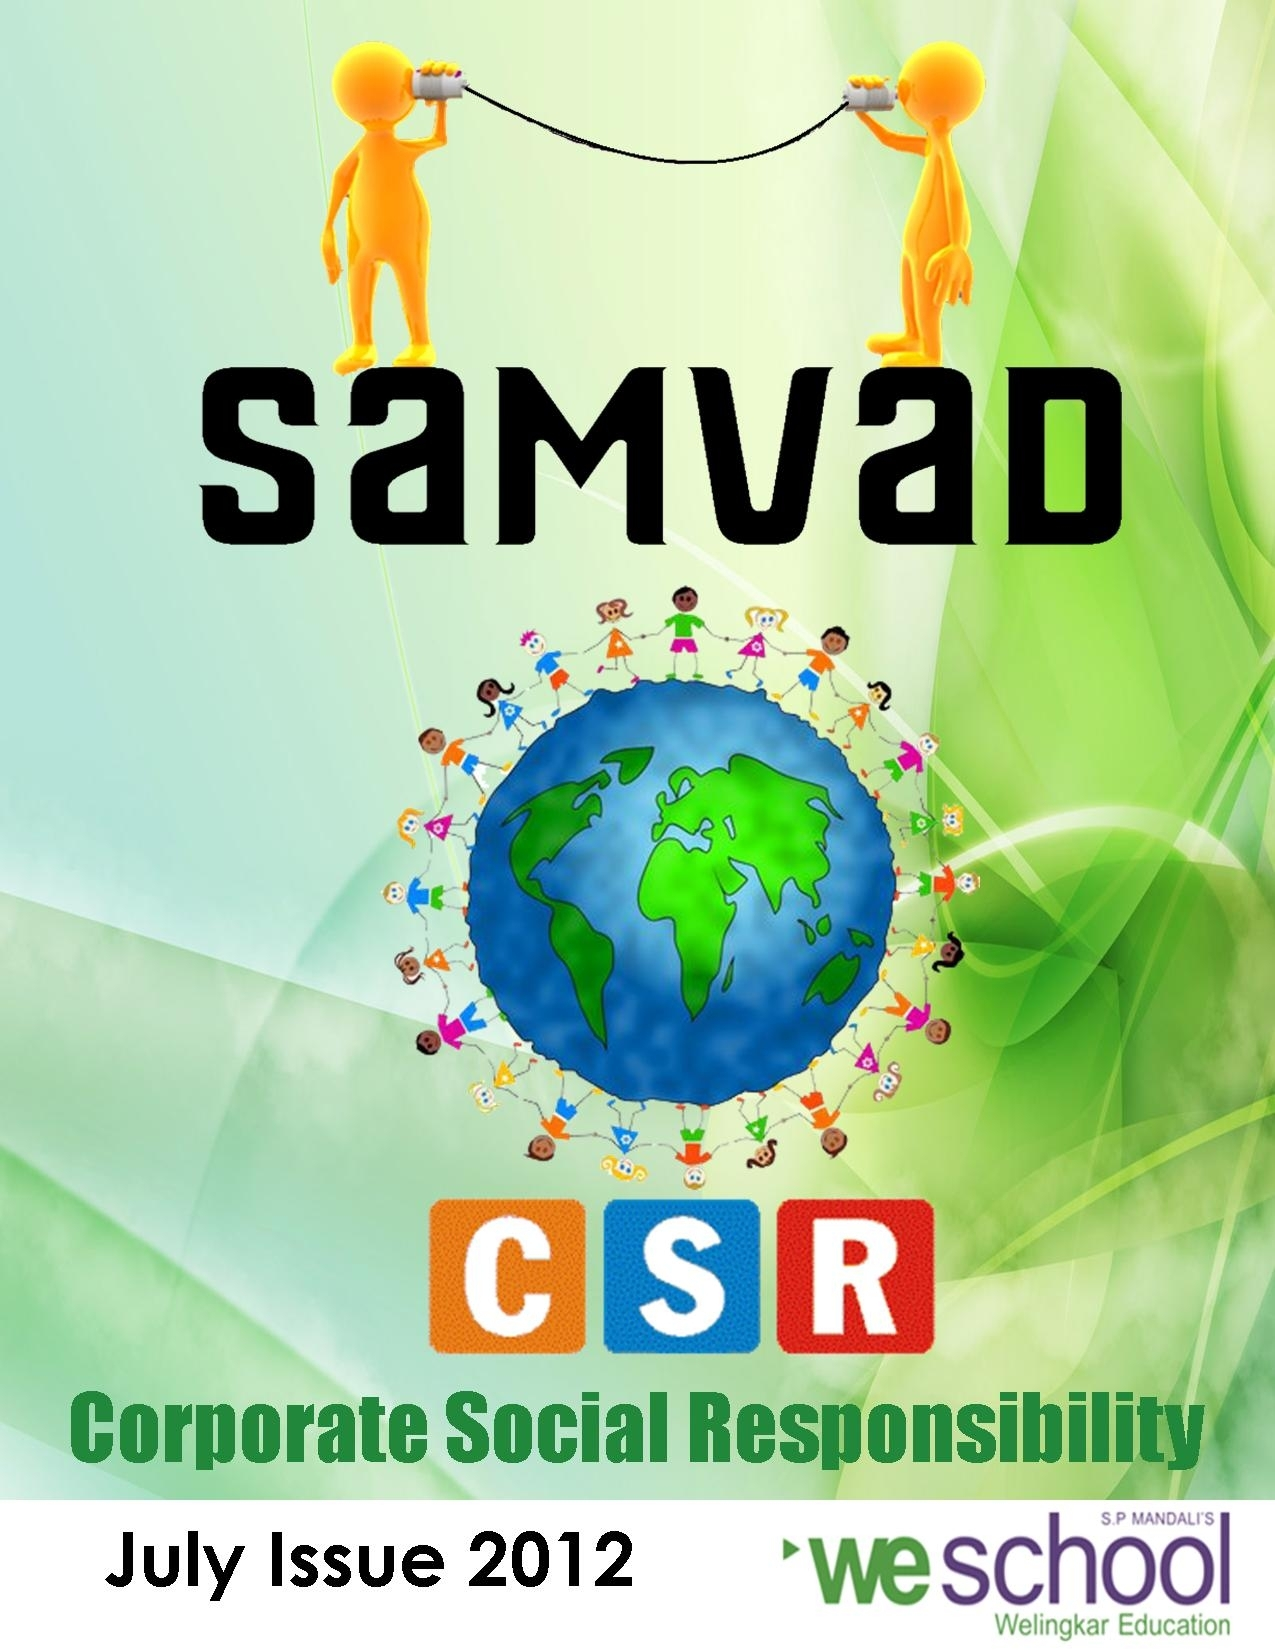 Corporates make the world a better place to live in. The past, present and future of CSR in Samvad this July